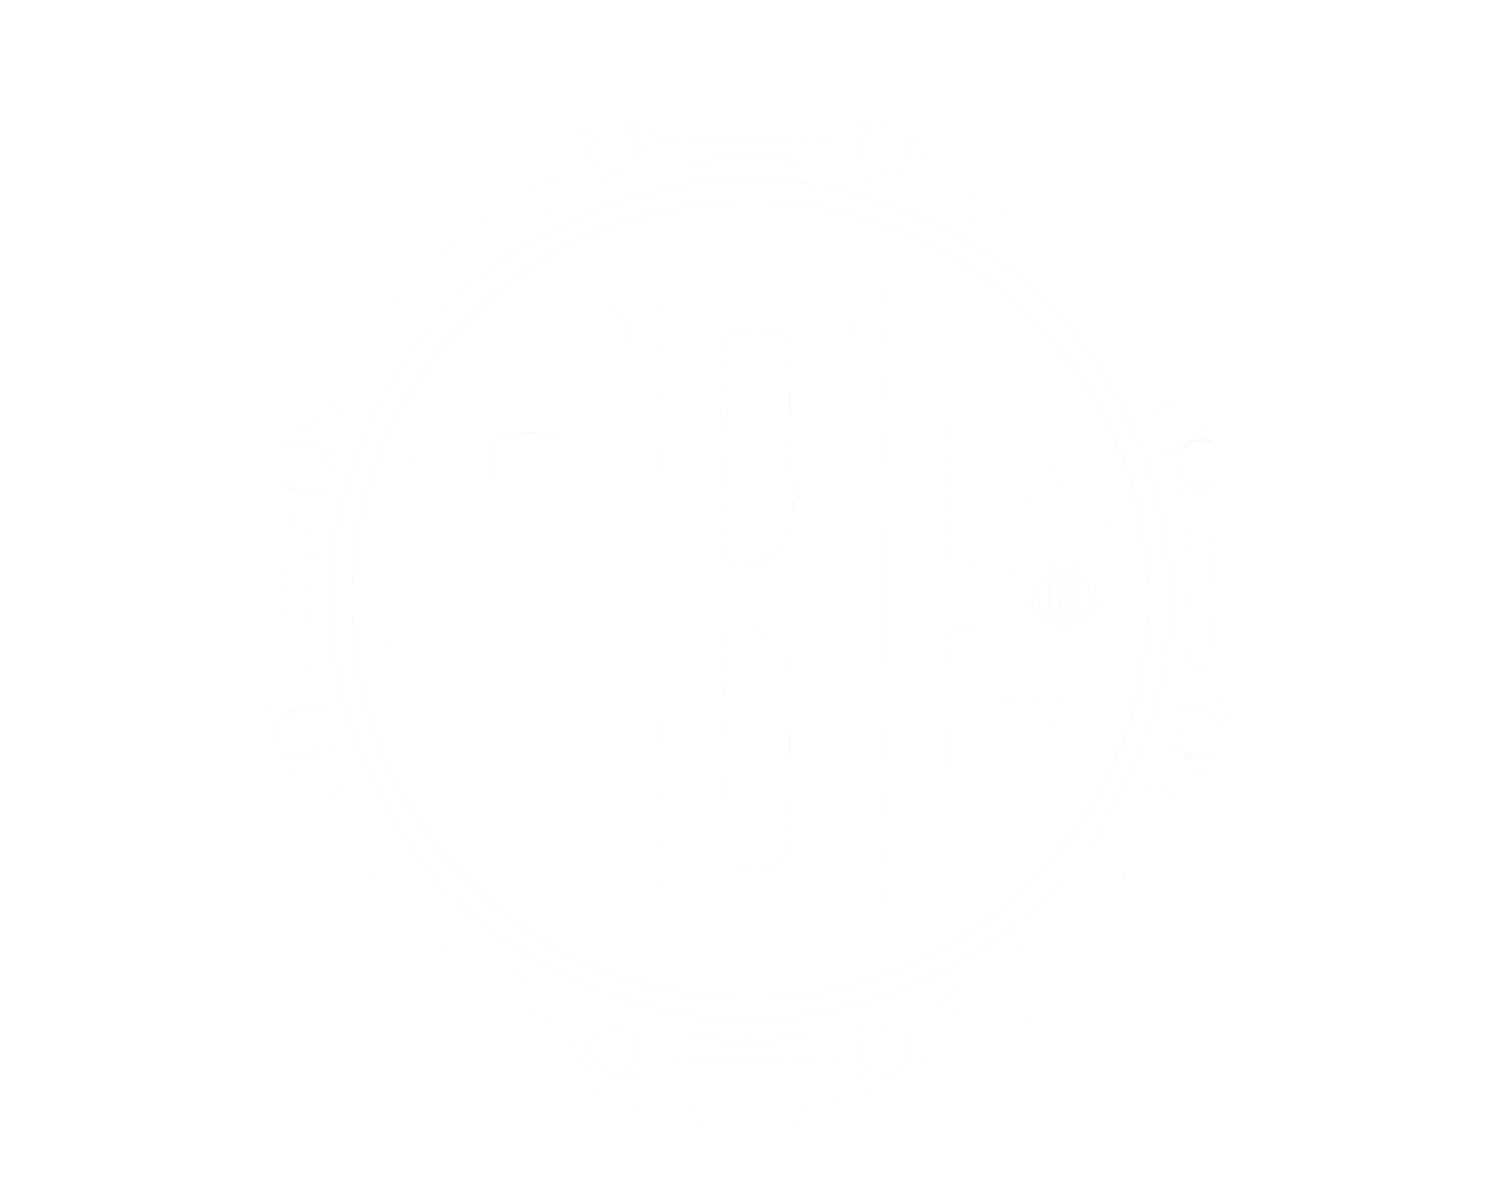 RED BAND ENTERTAINMENT